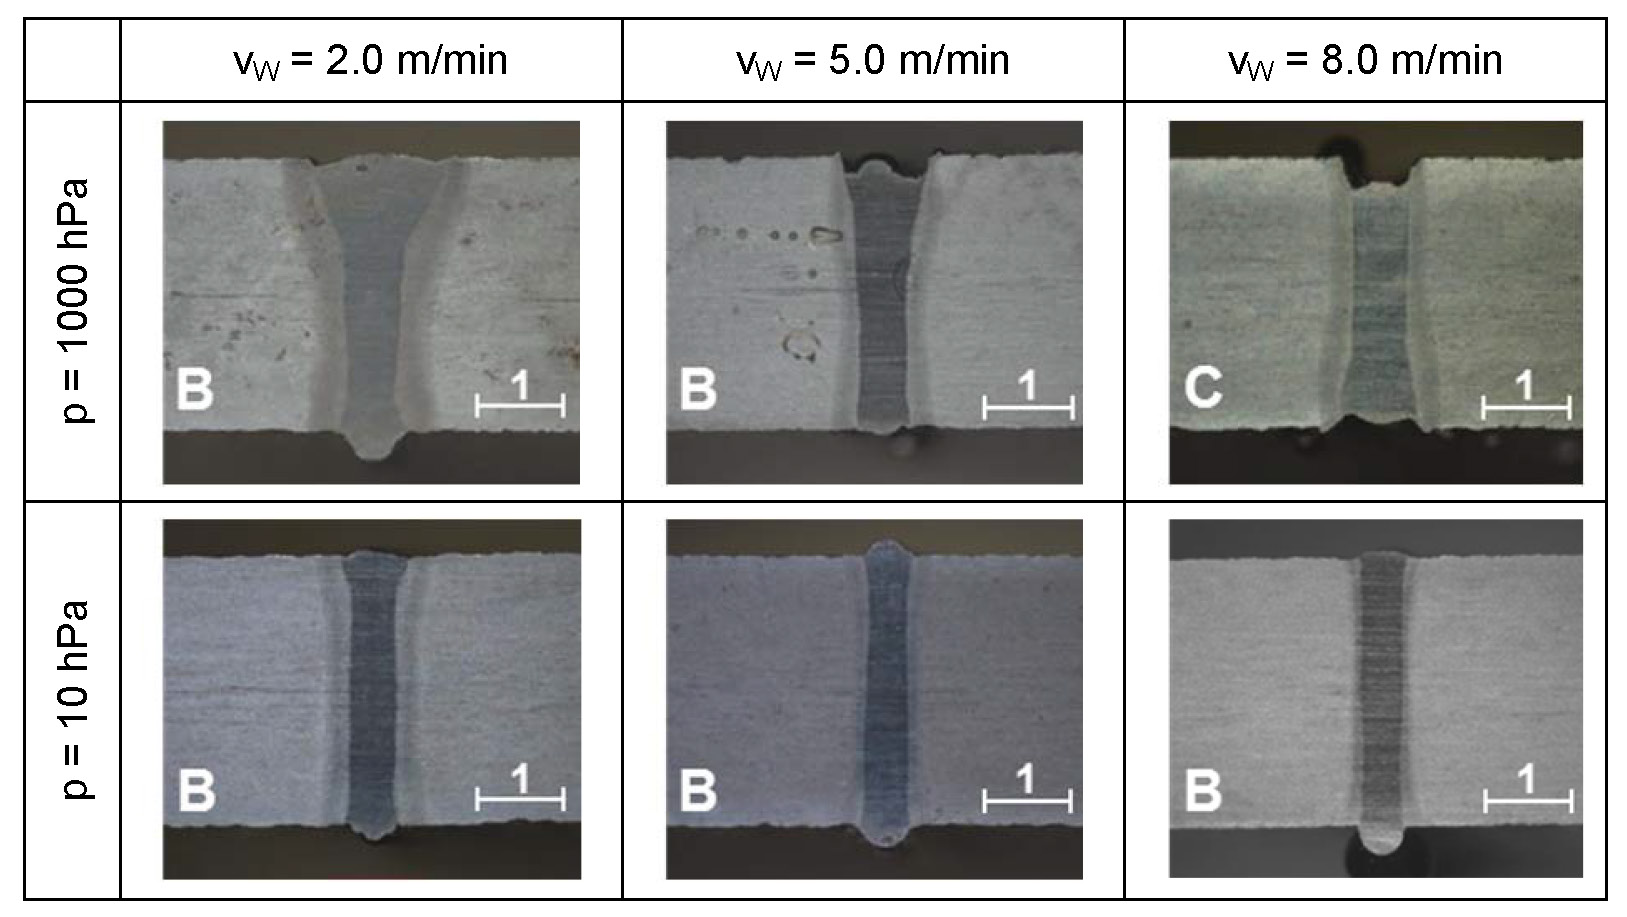 Figure 5. Weld seam geometry depending on ambient pressure and welding speed in 3mm 16MnCr5